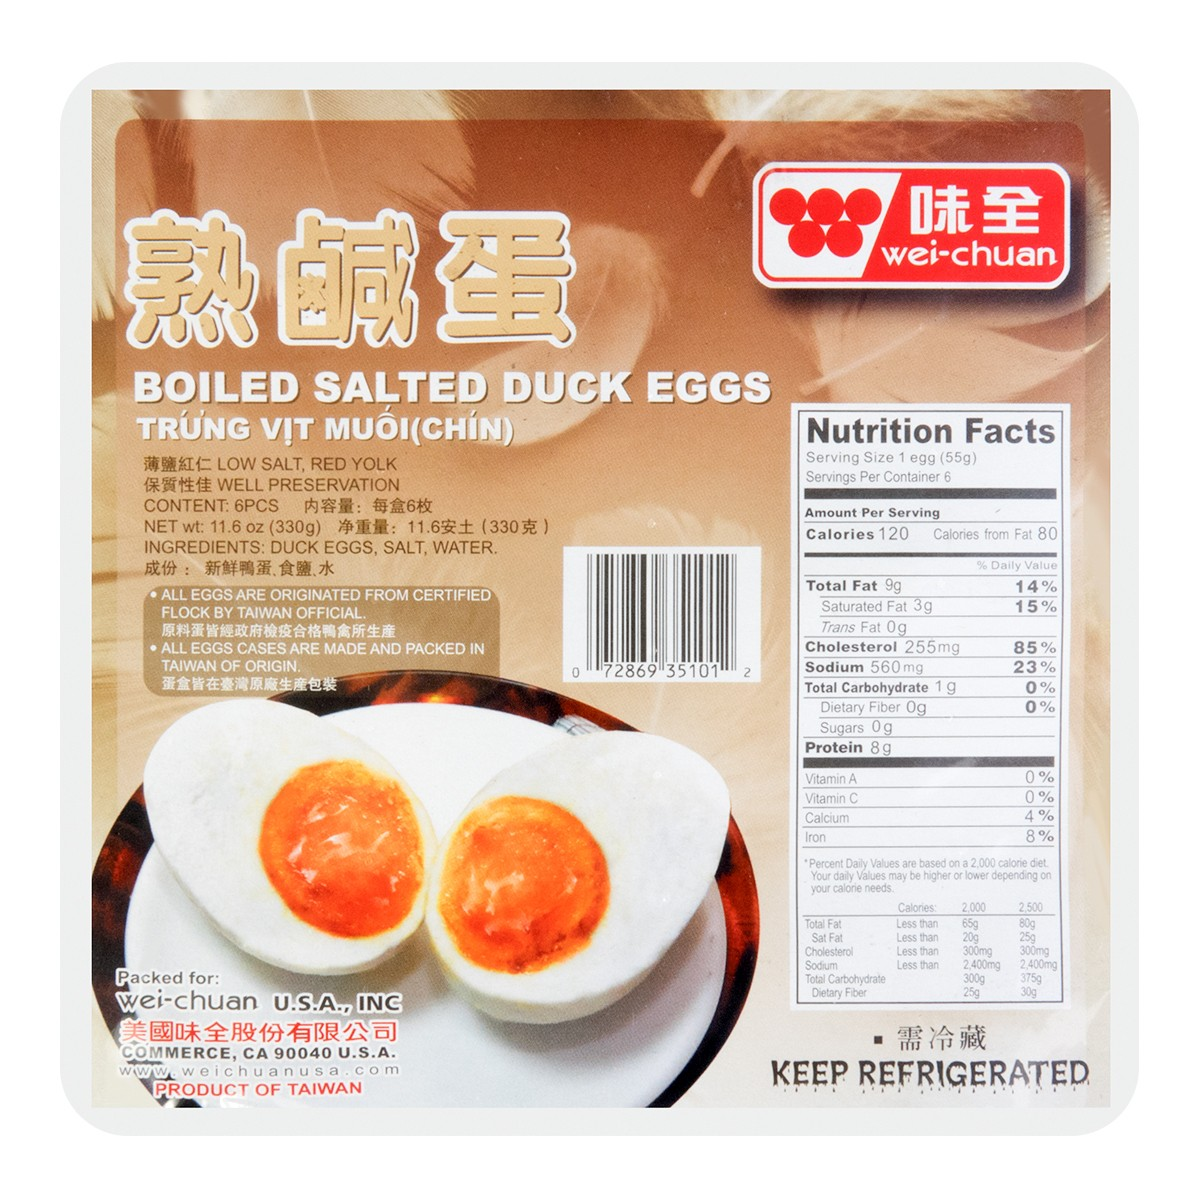 WEI CHUAN Boiled Salted Duck Egg 6pcs 330g